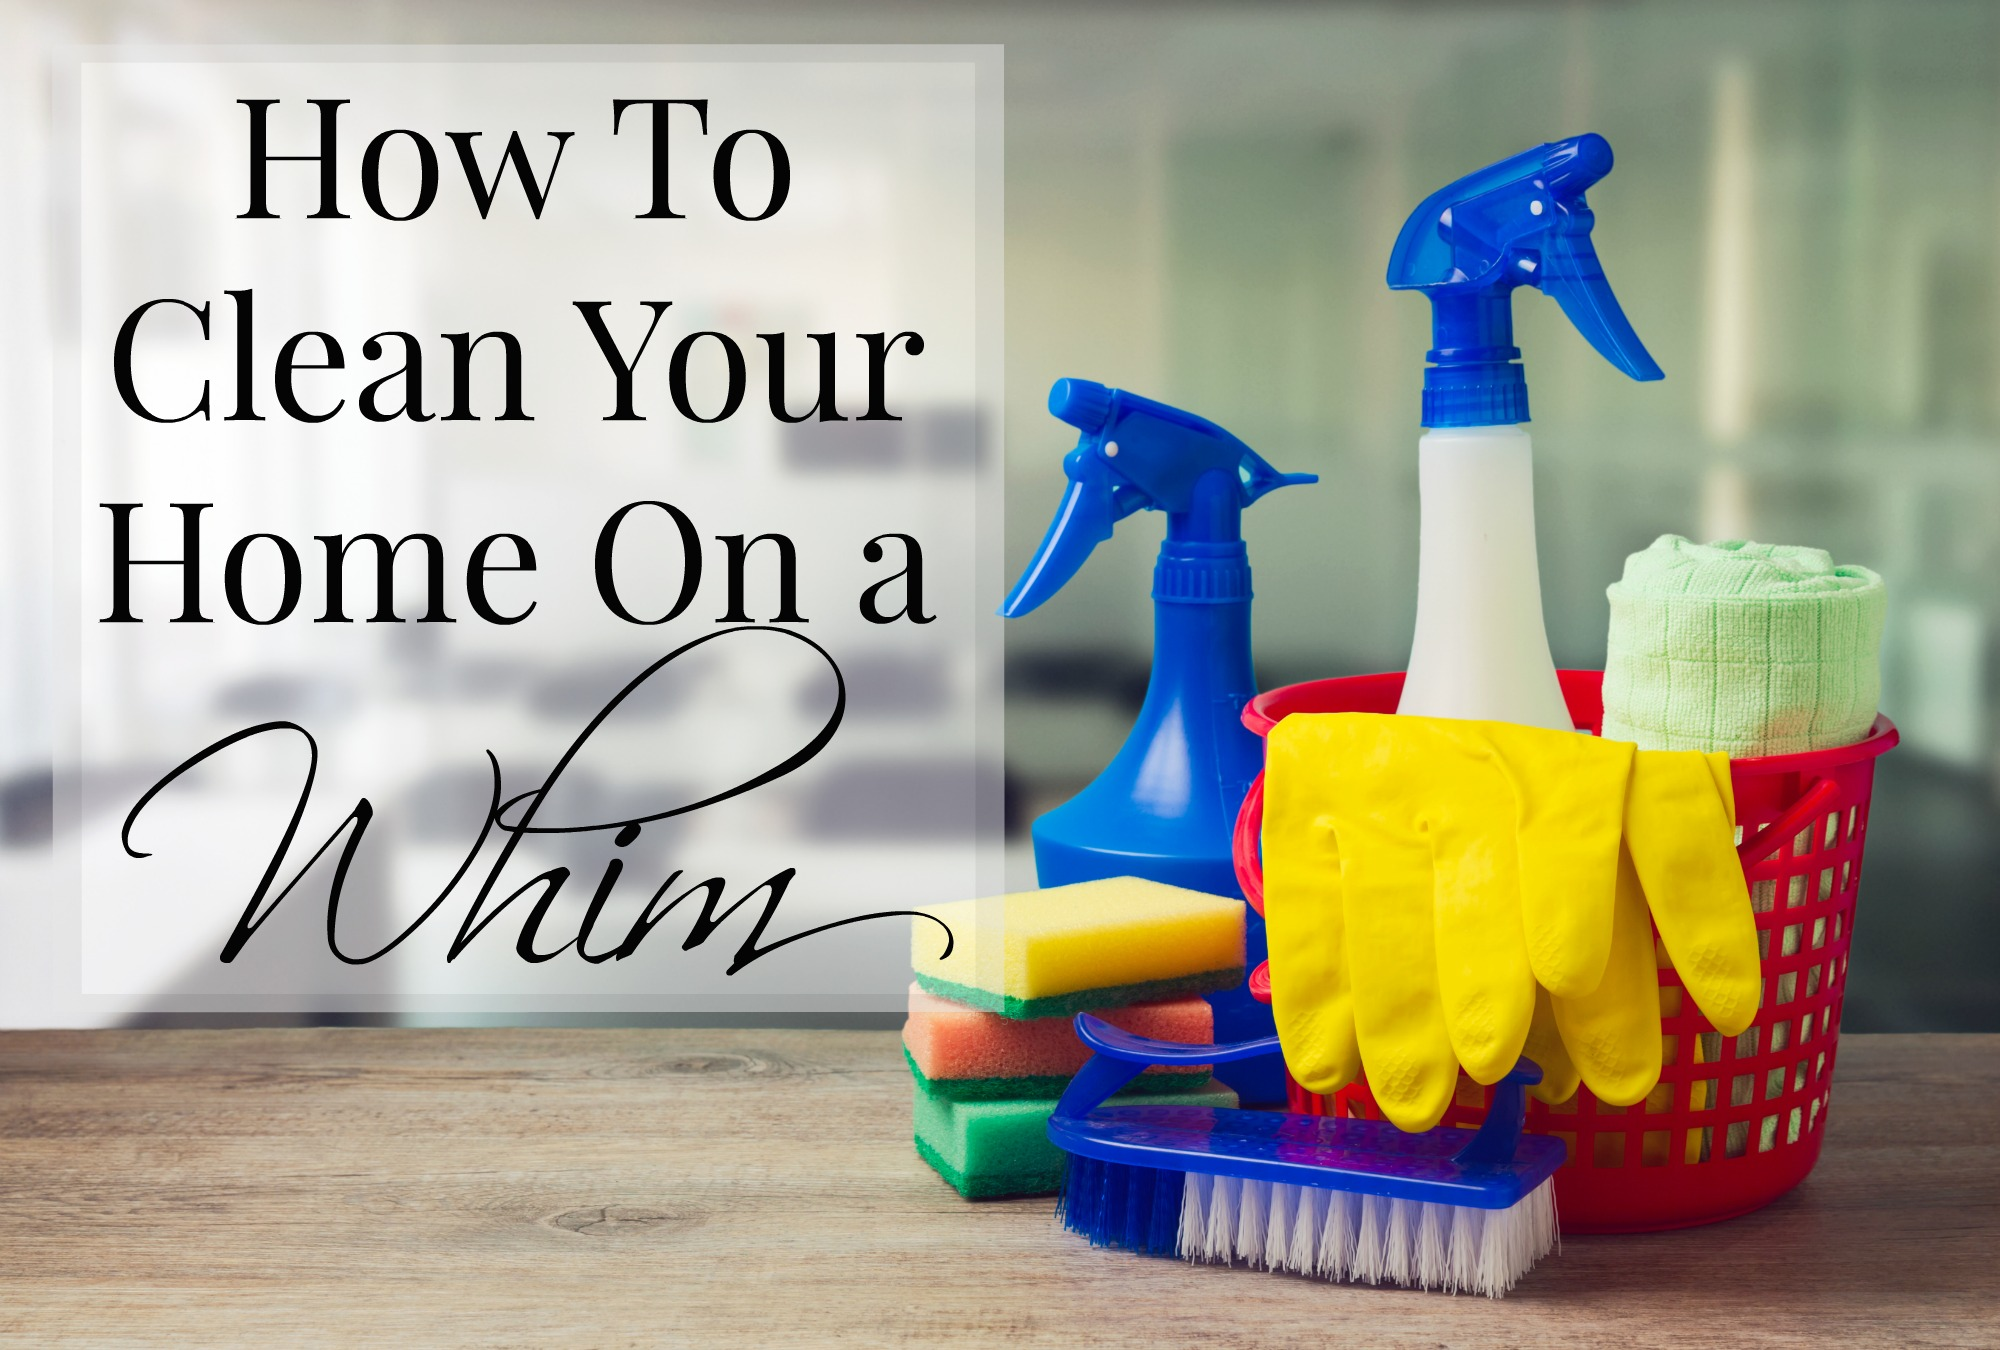 How To Clean Your Home On a Whim